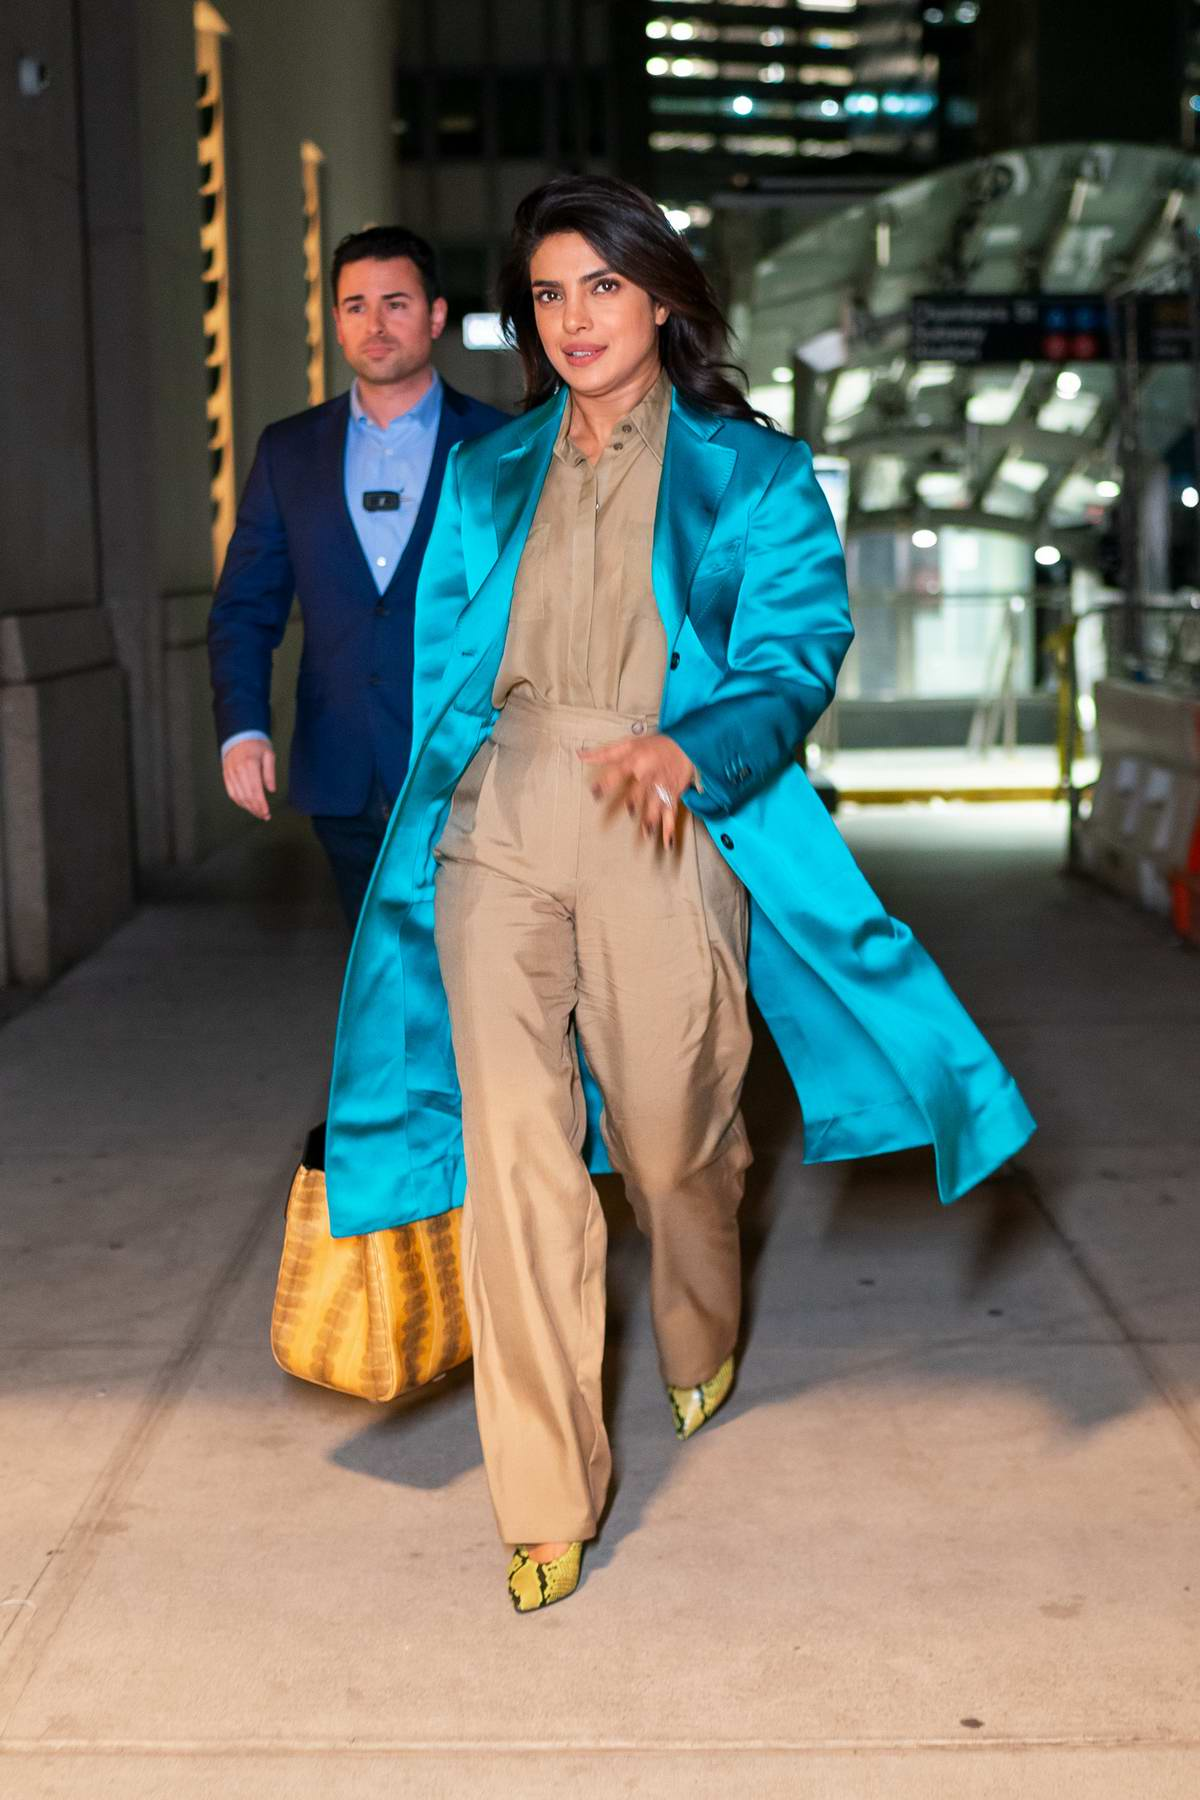 Priyanka Chopra steps out in a stylish turquoise blue overcoat and beige jumpsuit in New York City